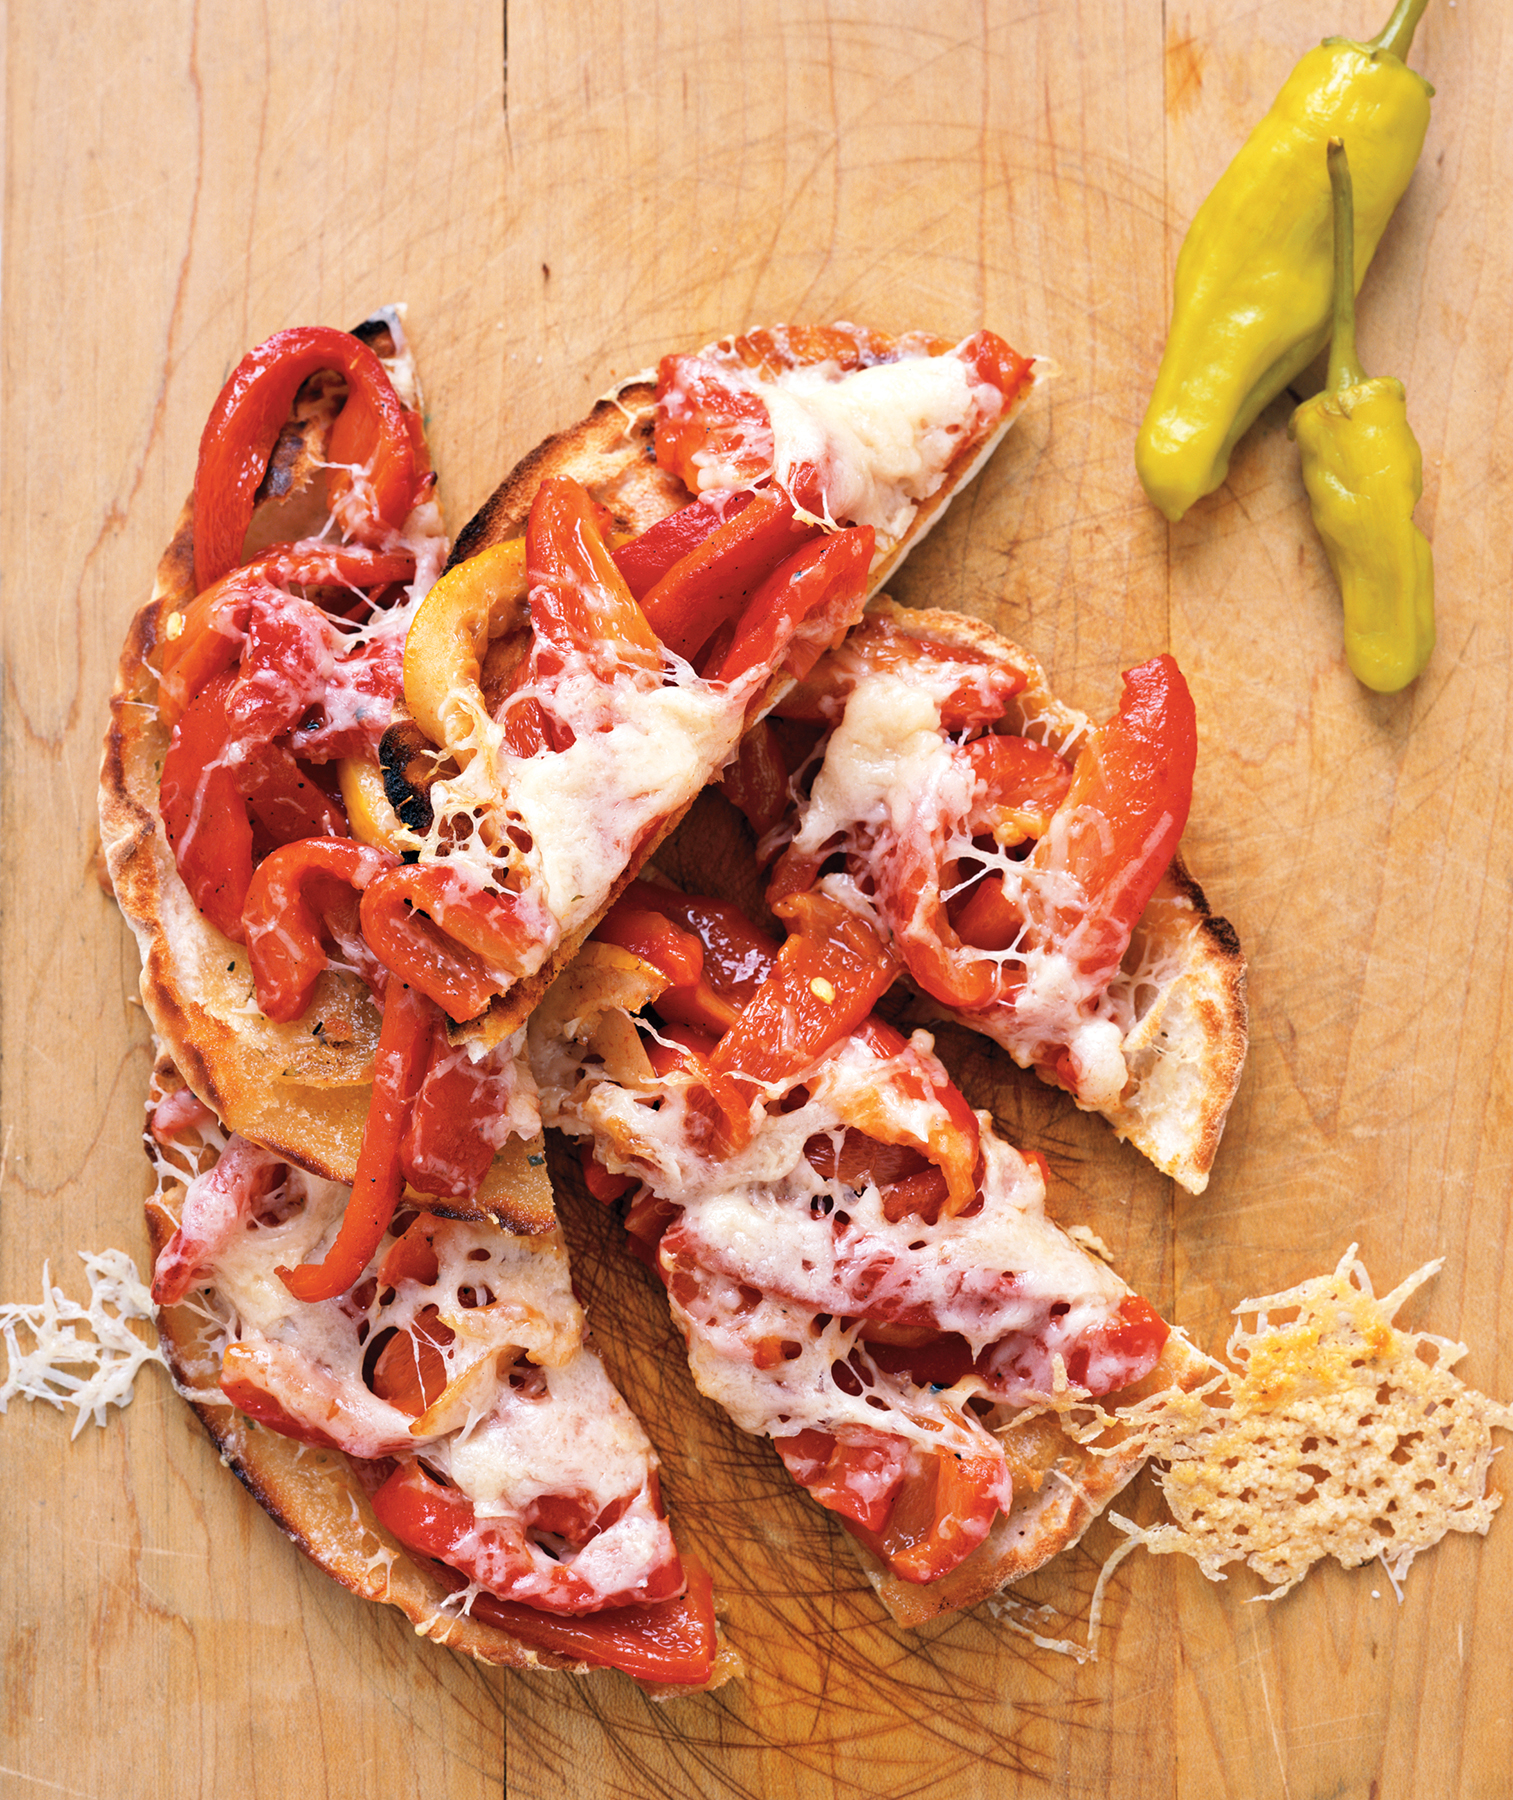 Provolone and Roasted Red Pepper Crisps